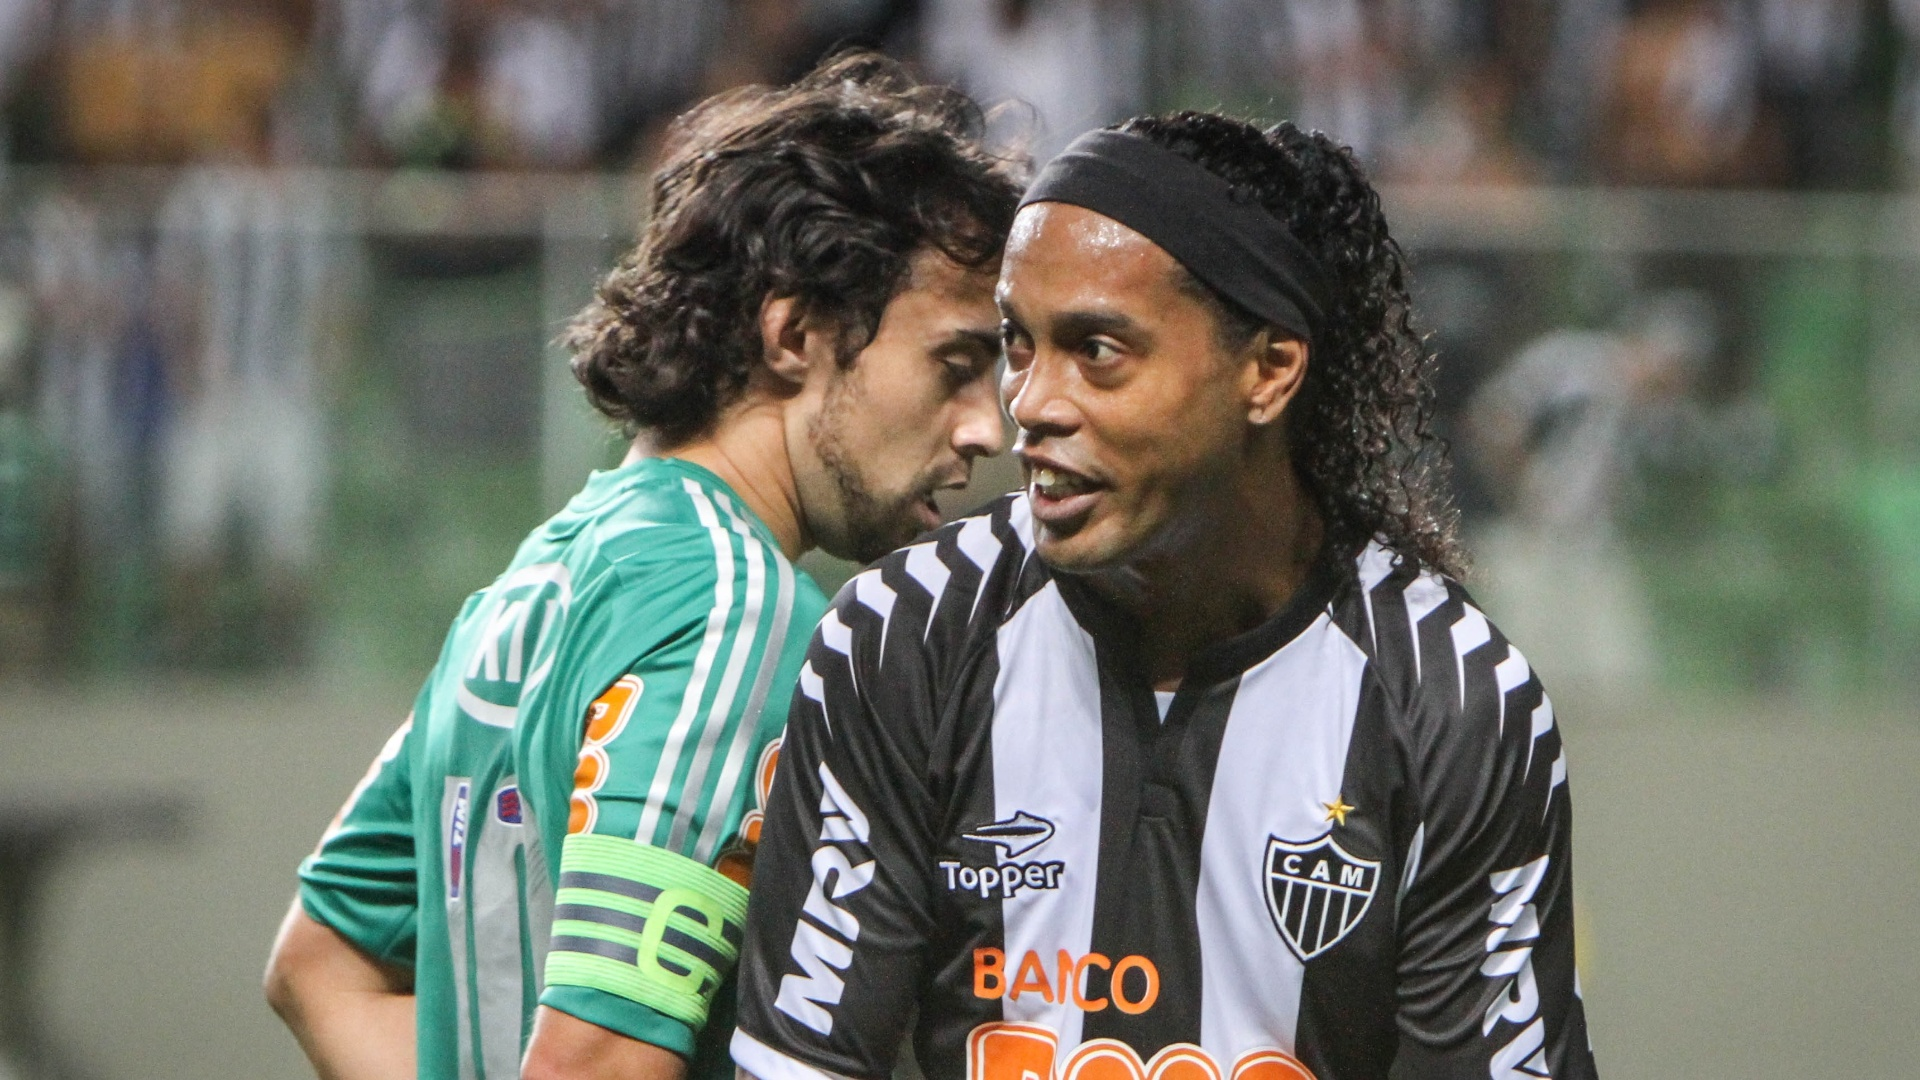 Valdivia e Ronaldinho Gacho se encontram em jogo entre Palmeiras e Atltico-MG